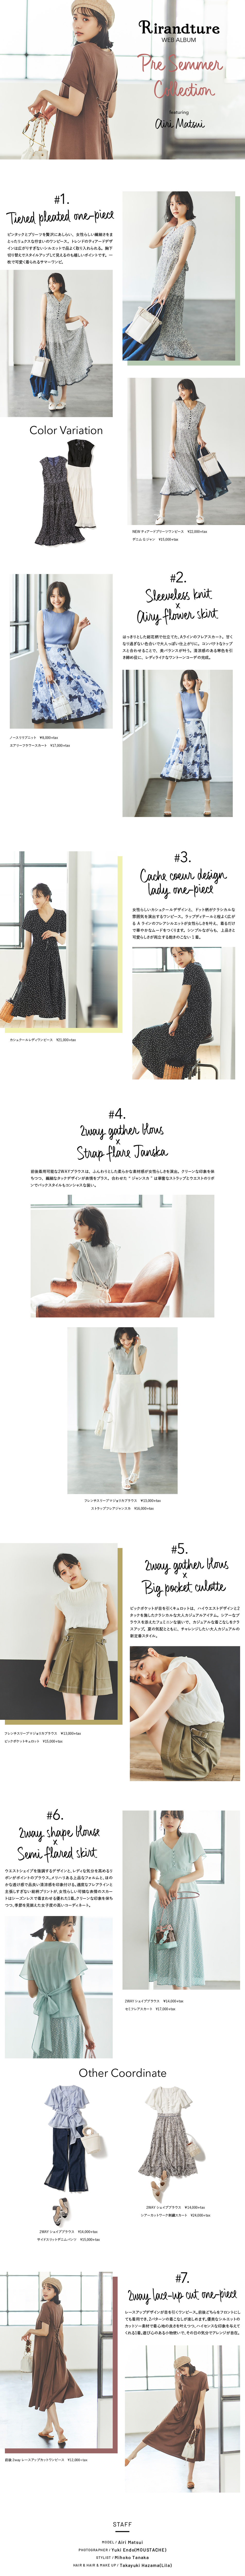 WEB ALBUM vol.49 - Rirandture × 松井愛莉